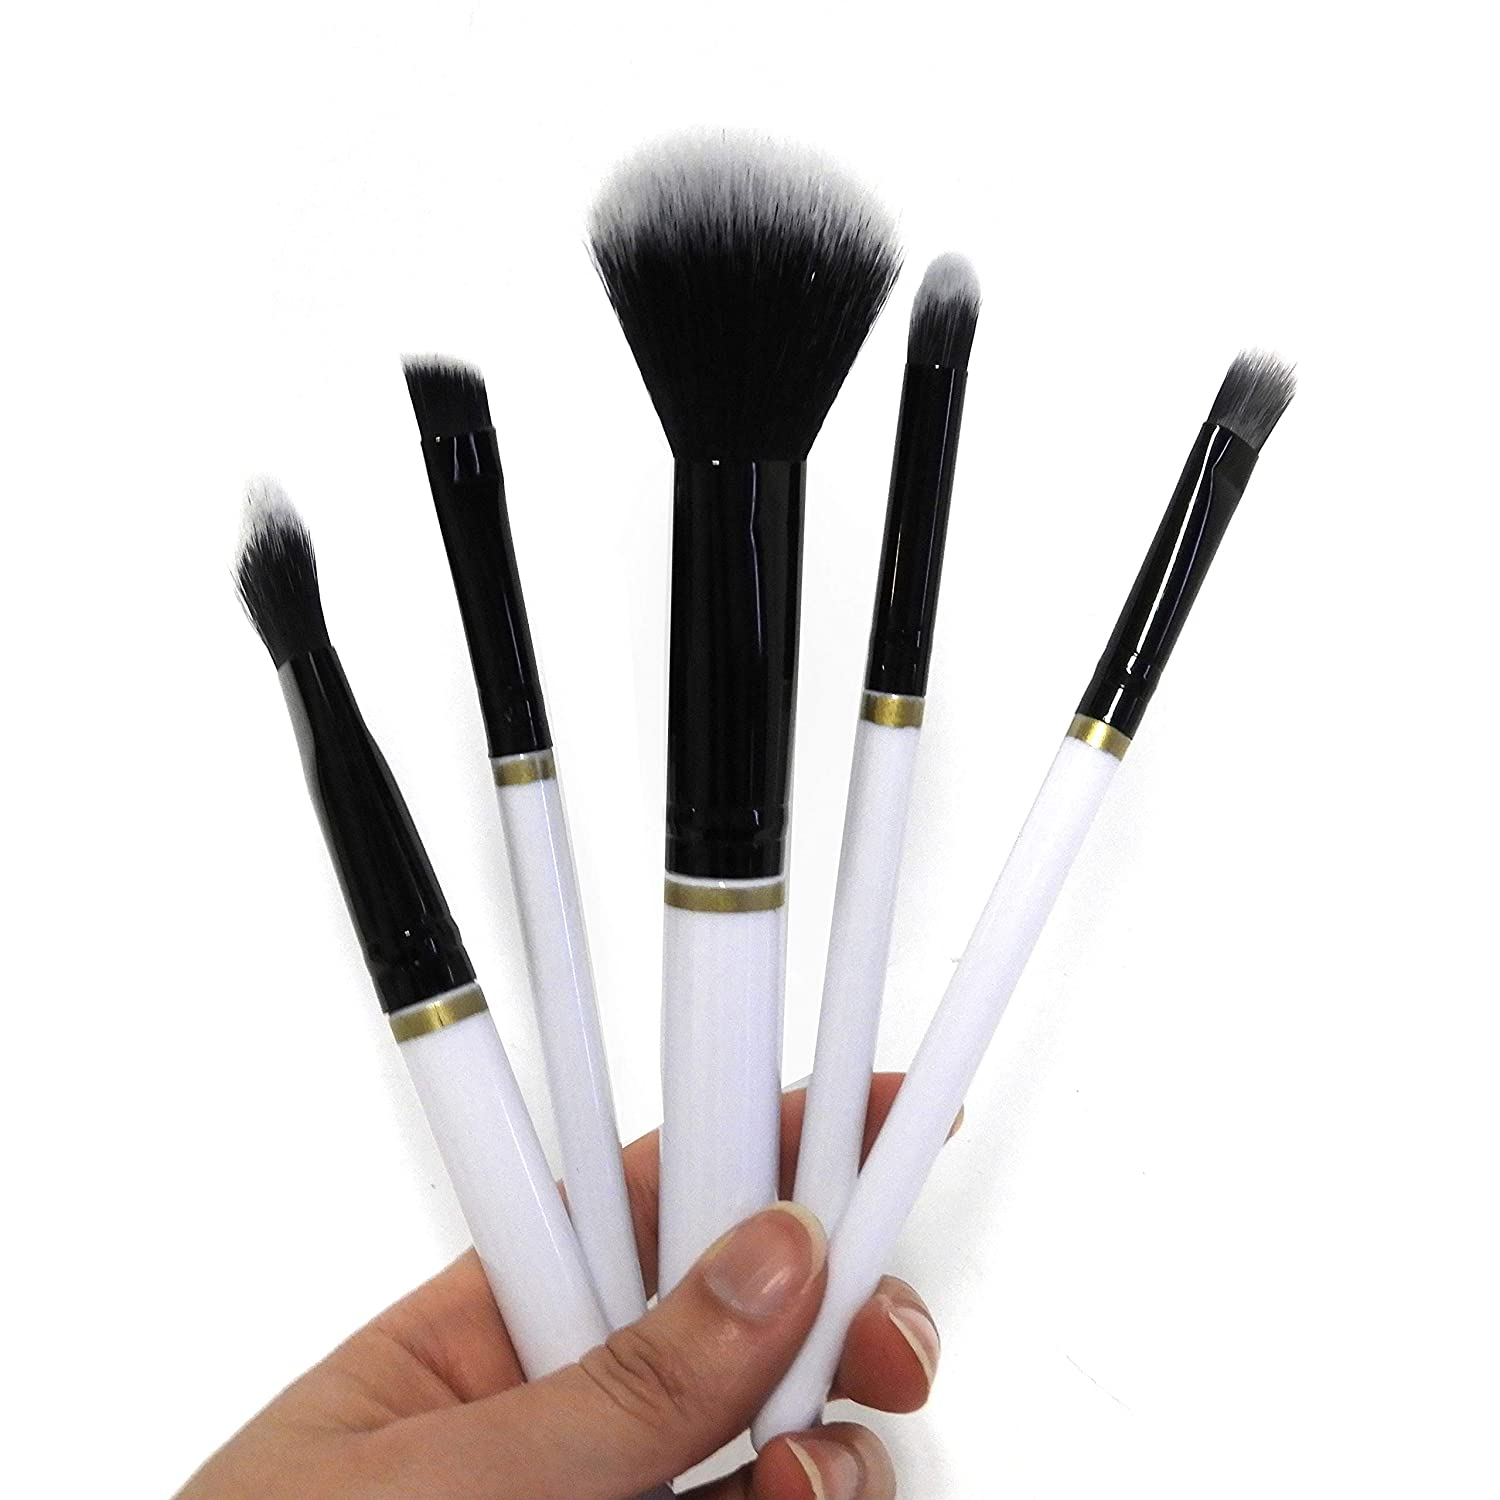 Five Piece Makeup Brush Collection - Embellished with Gold Metal Detailing